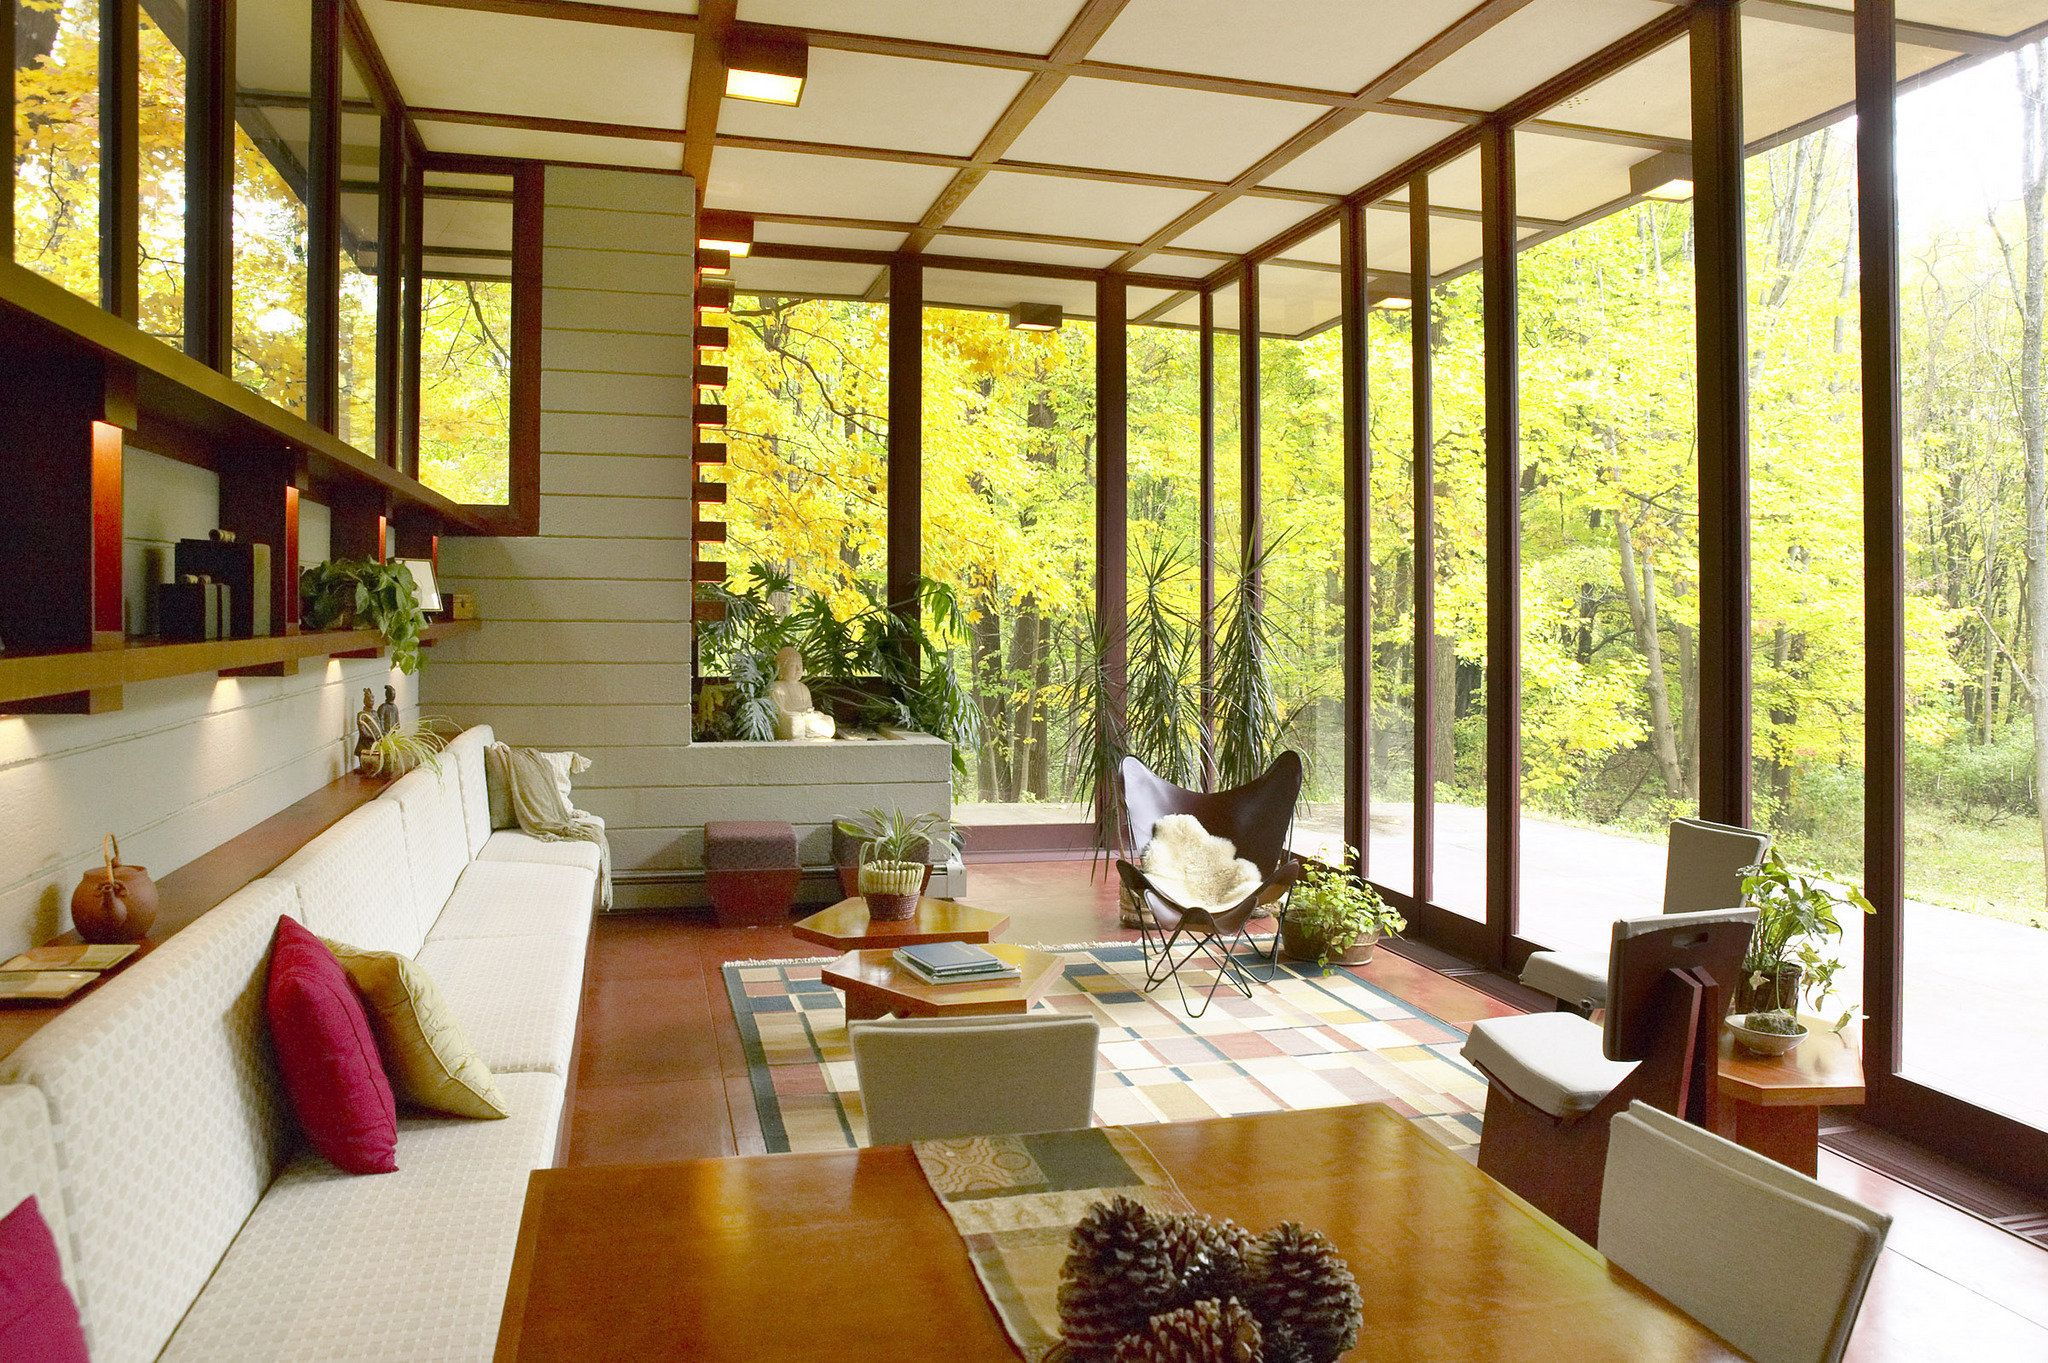 Frank Lloyd Wright Building Conservancy Tour To Focus On Wright